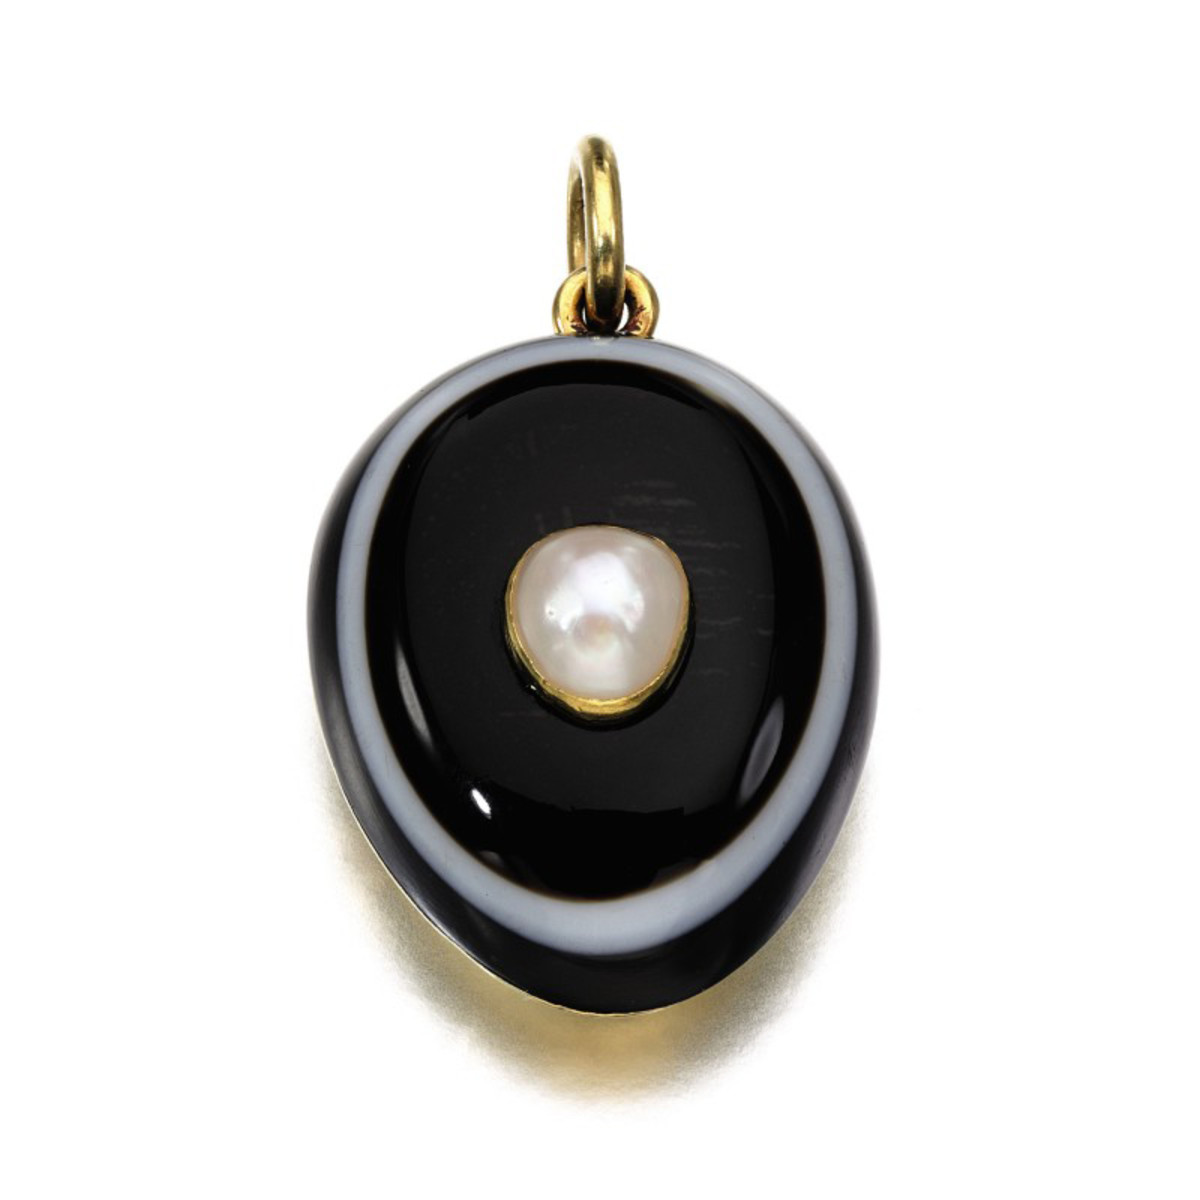 """A banded agate and pearl pendant, 1878, with a glazed compartment containing a lock of hair and the inscription, """"16th Nov & 14th Dec 1878 From Grandmama VR."""" Commissioned by Queen Victoria as a mourning jewel on the death of her granddaughter Princess Marie of Hesse and by Rhine and her daughter Princess Alice of the United Kingdom, who both died of diphtheria that same year. This sold for $33,305."""